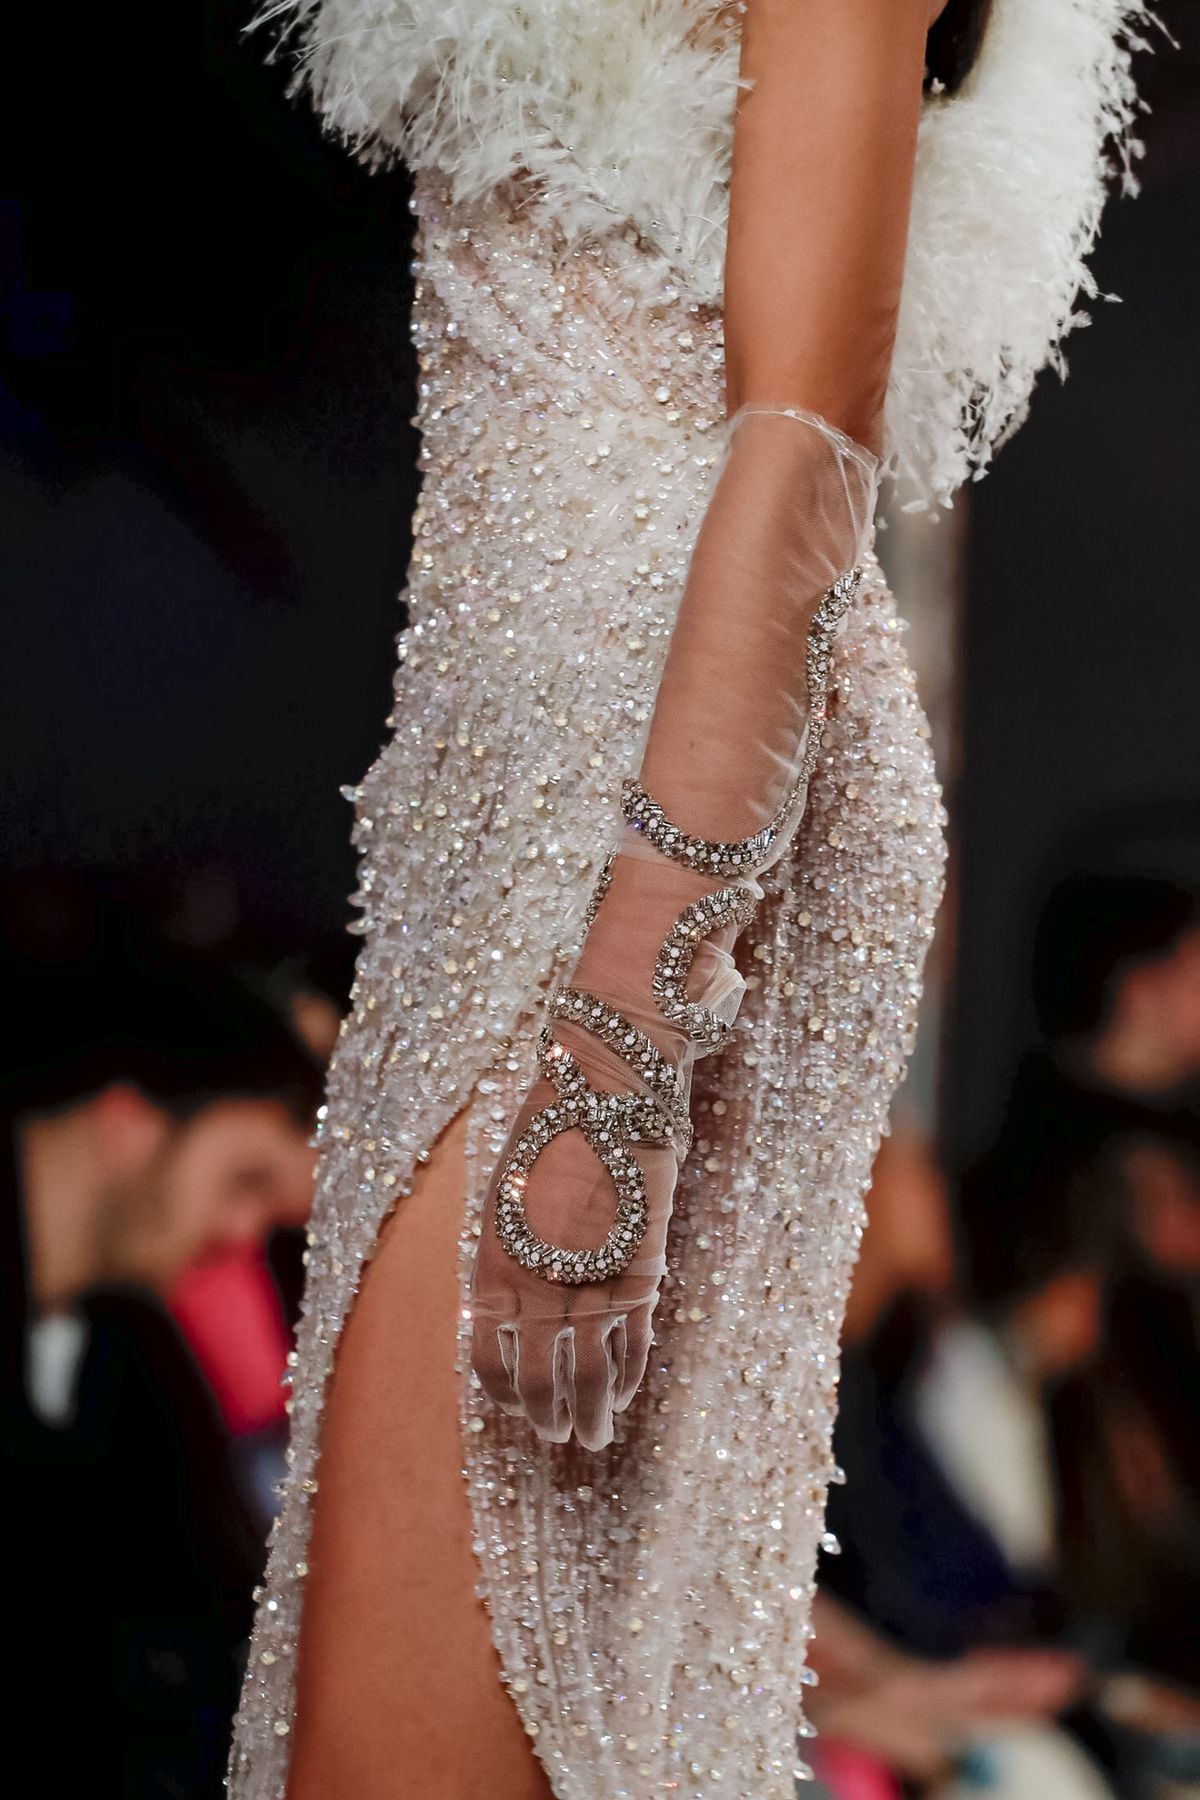 Ralph & Russo Couture Spring/Summer 2019 Fashion